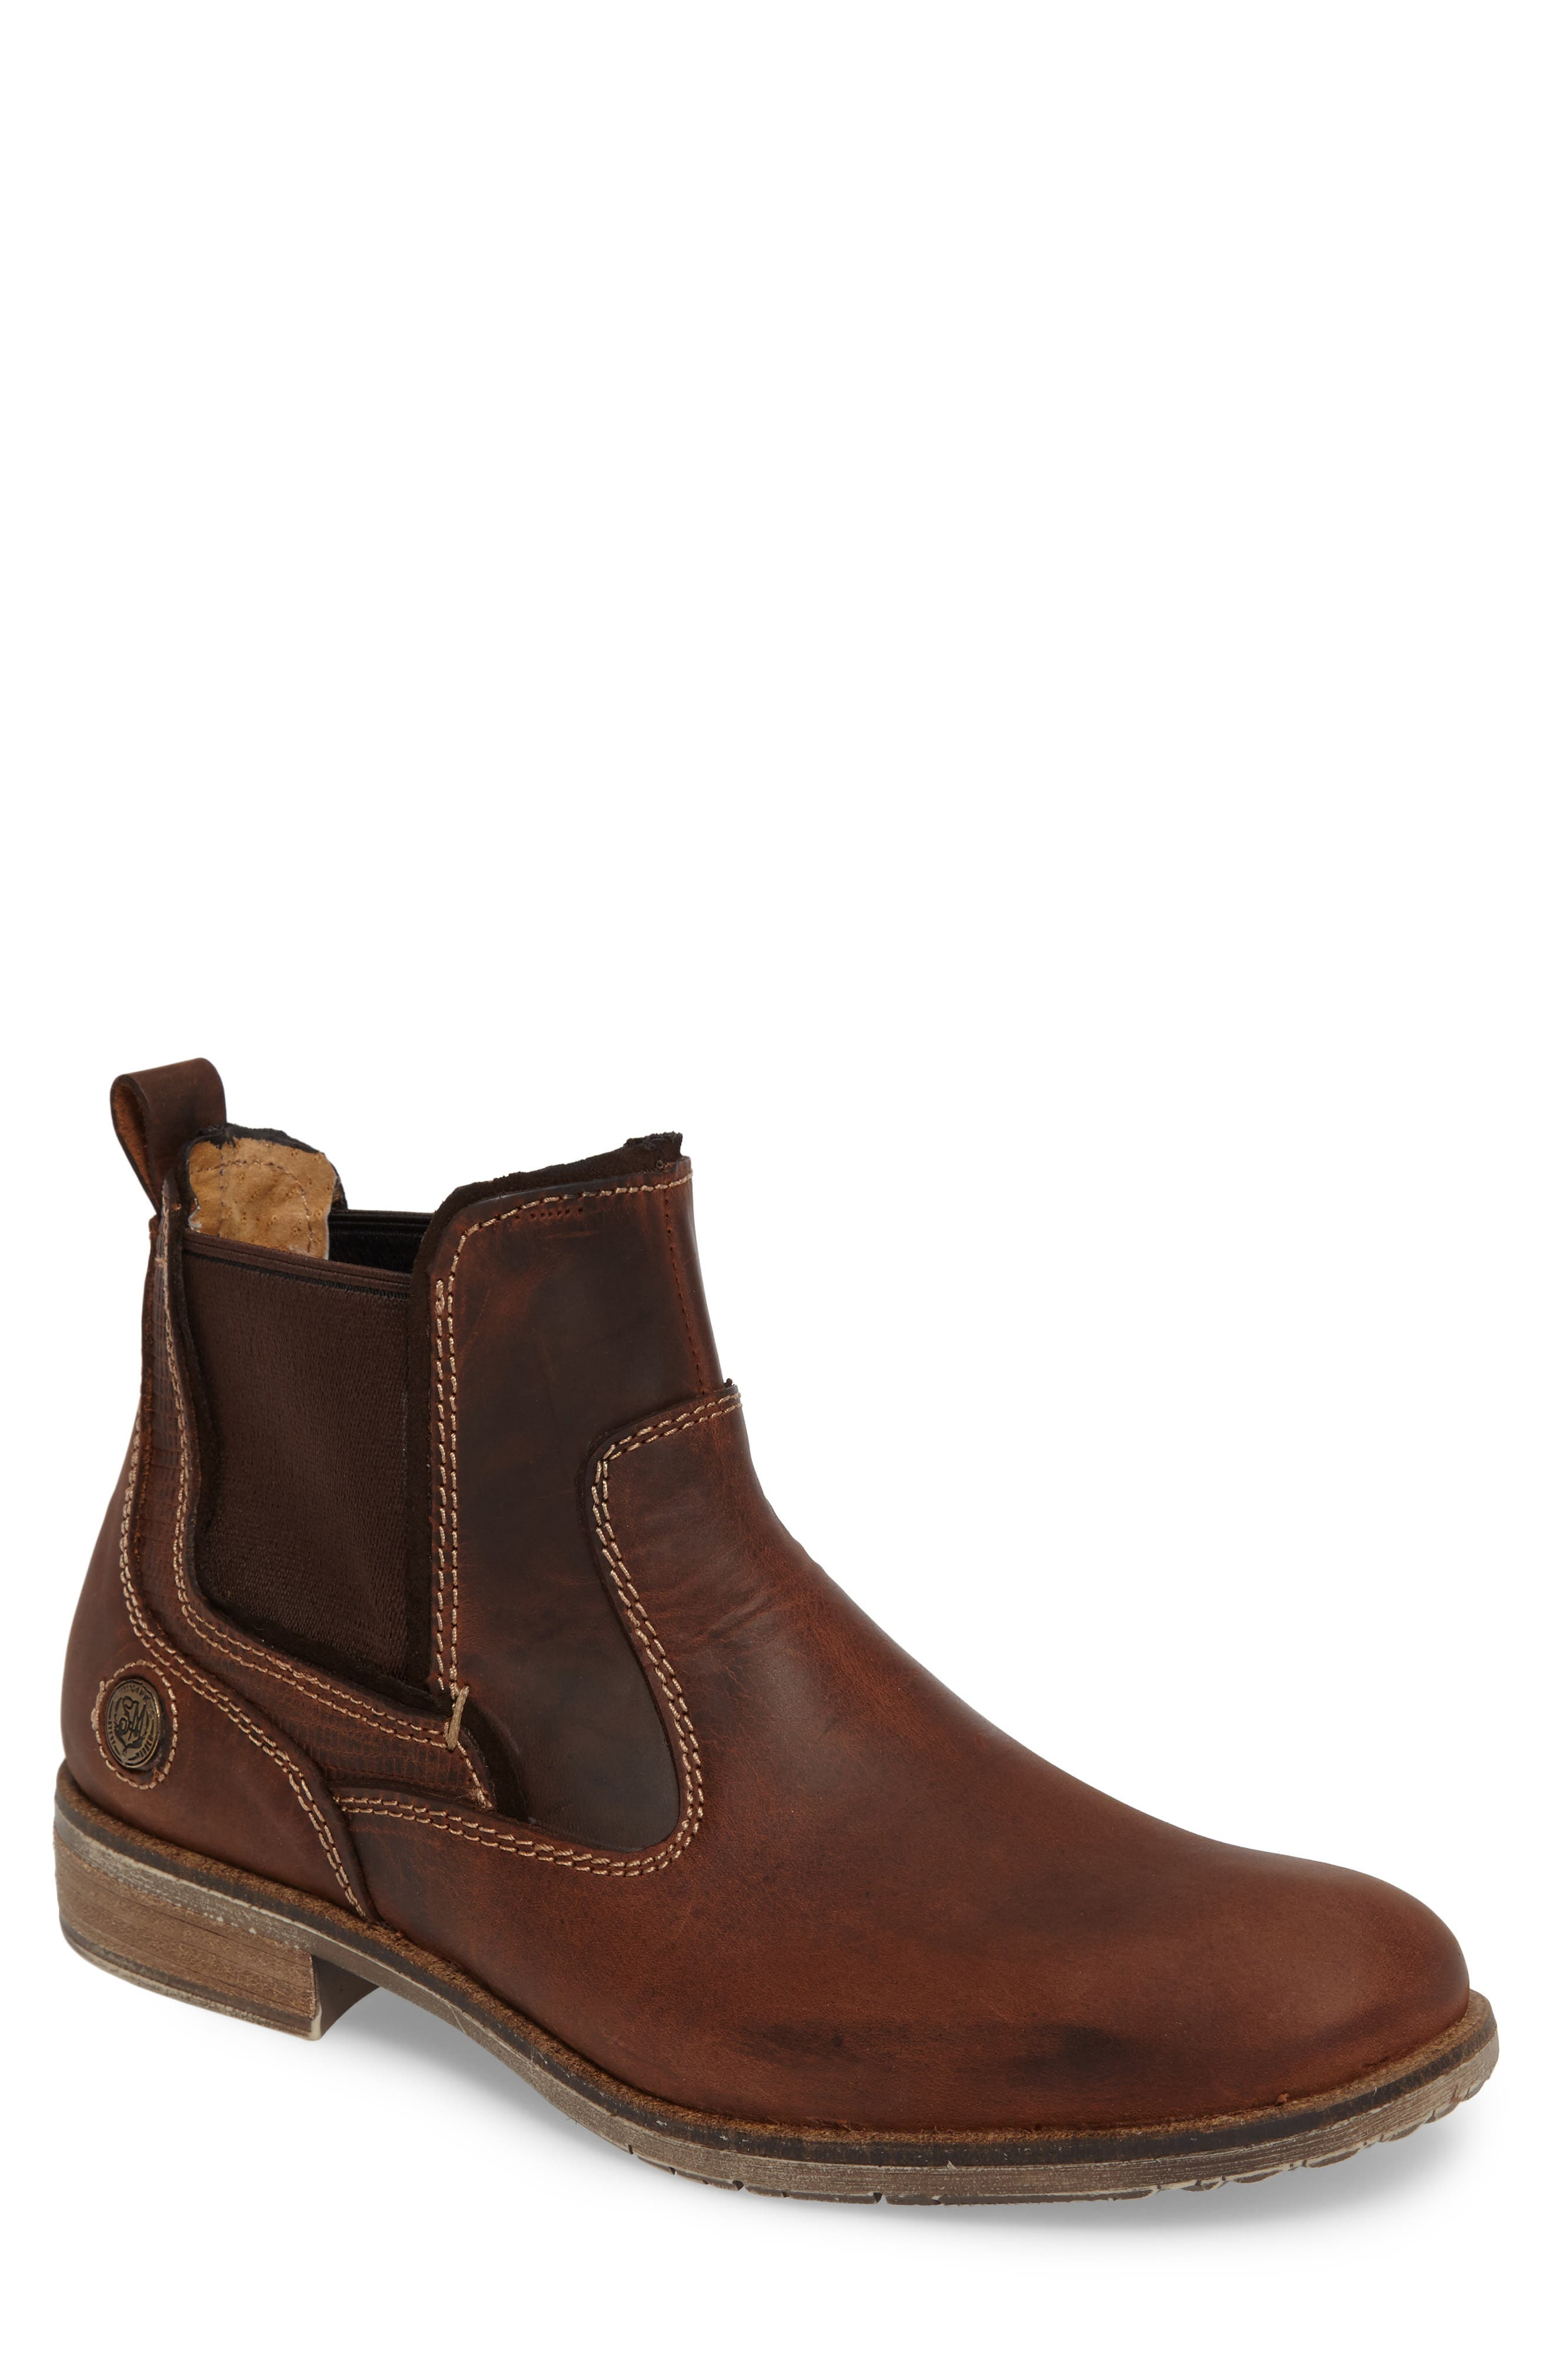 Alternate Image 1 Selected - Steve Madden Nockdown Chelsea Boot (Men)